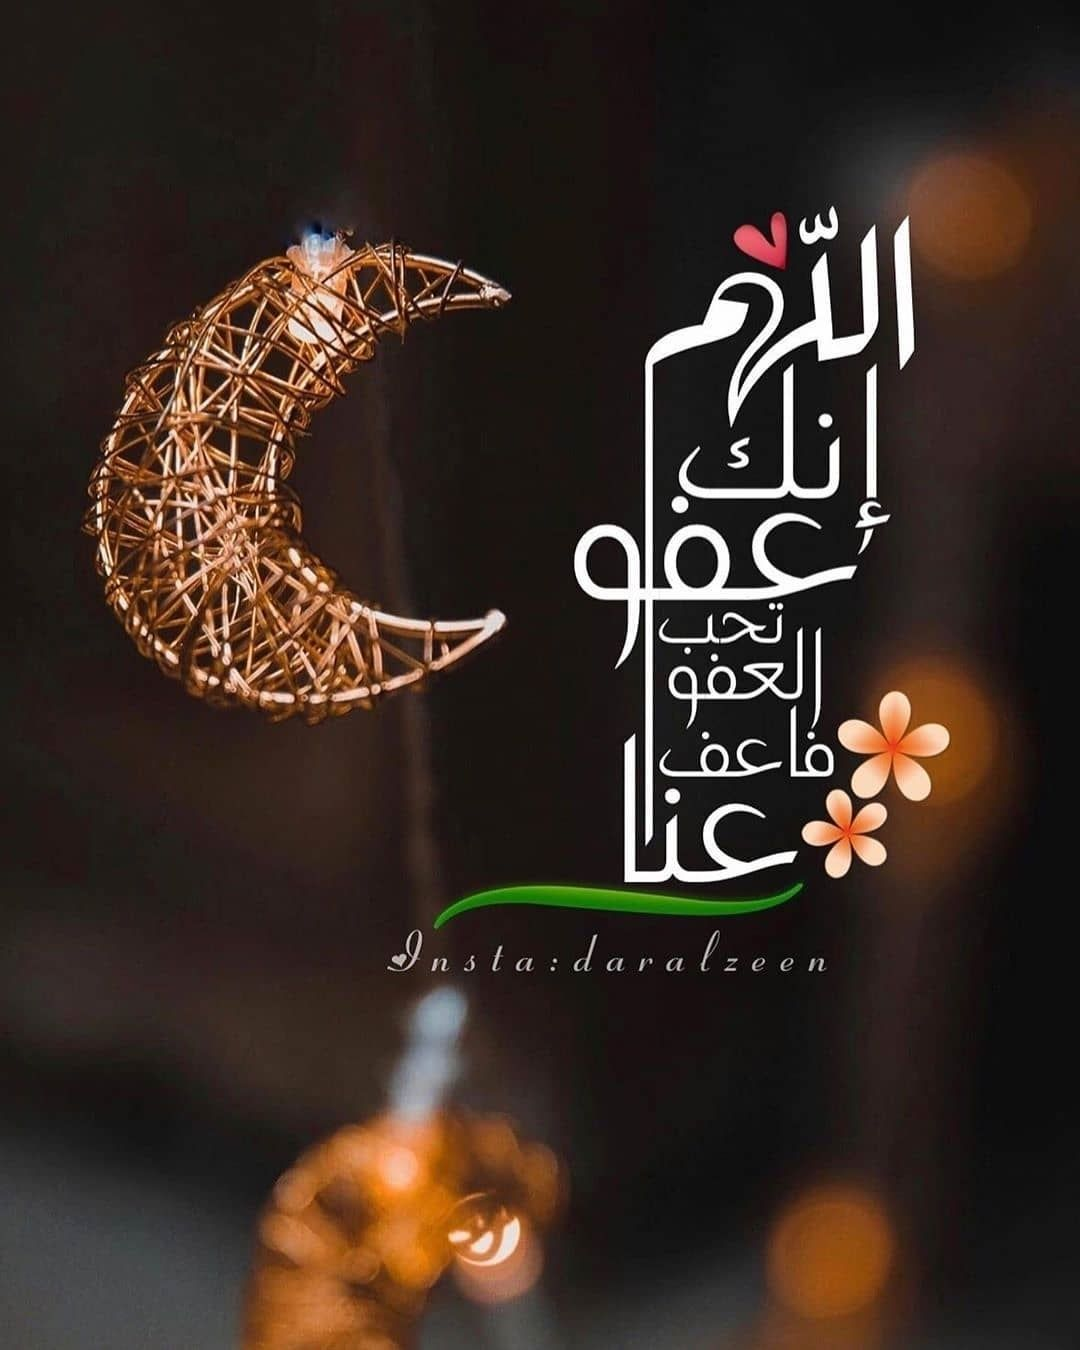 Wazkr Posted On Instagram See 5 560 Photos And Videos On Their Profile T Wallpaper Phone Wallpaper Images Ramadan Kareem